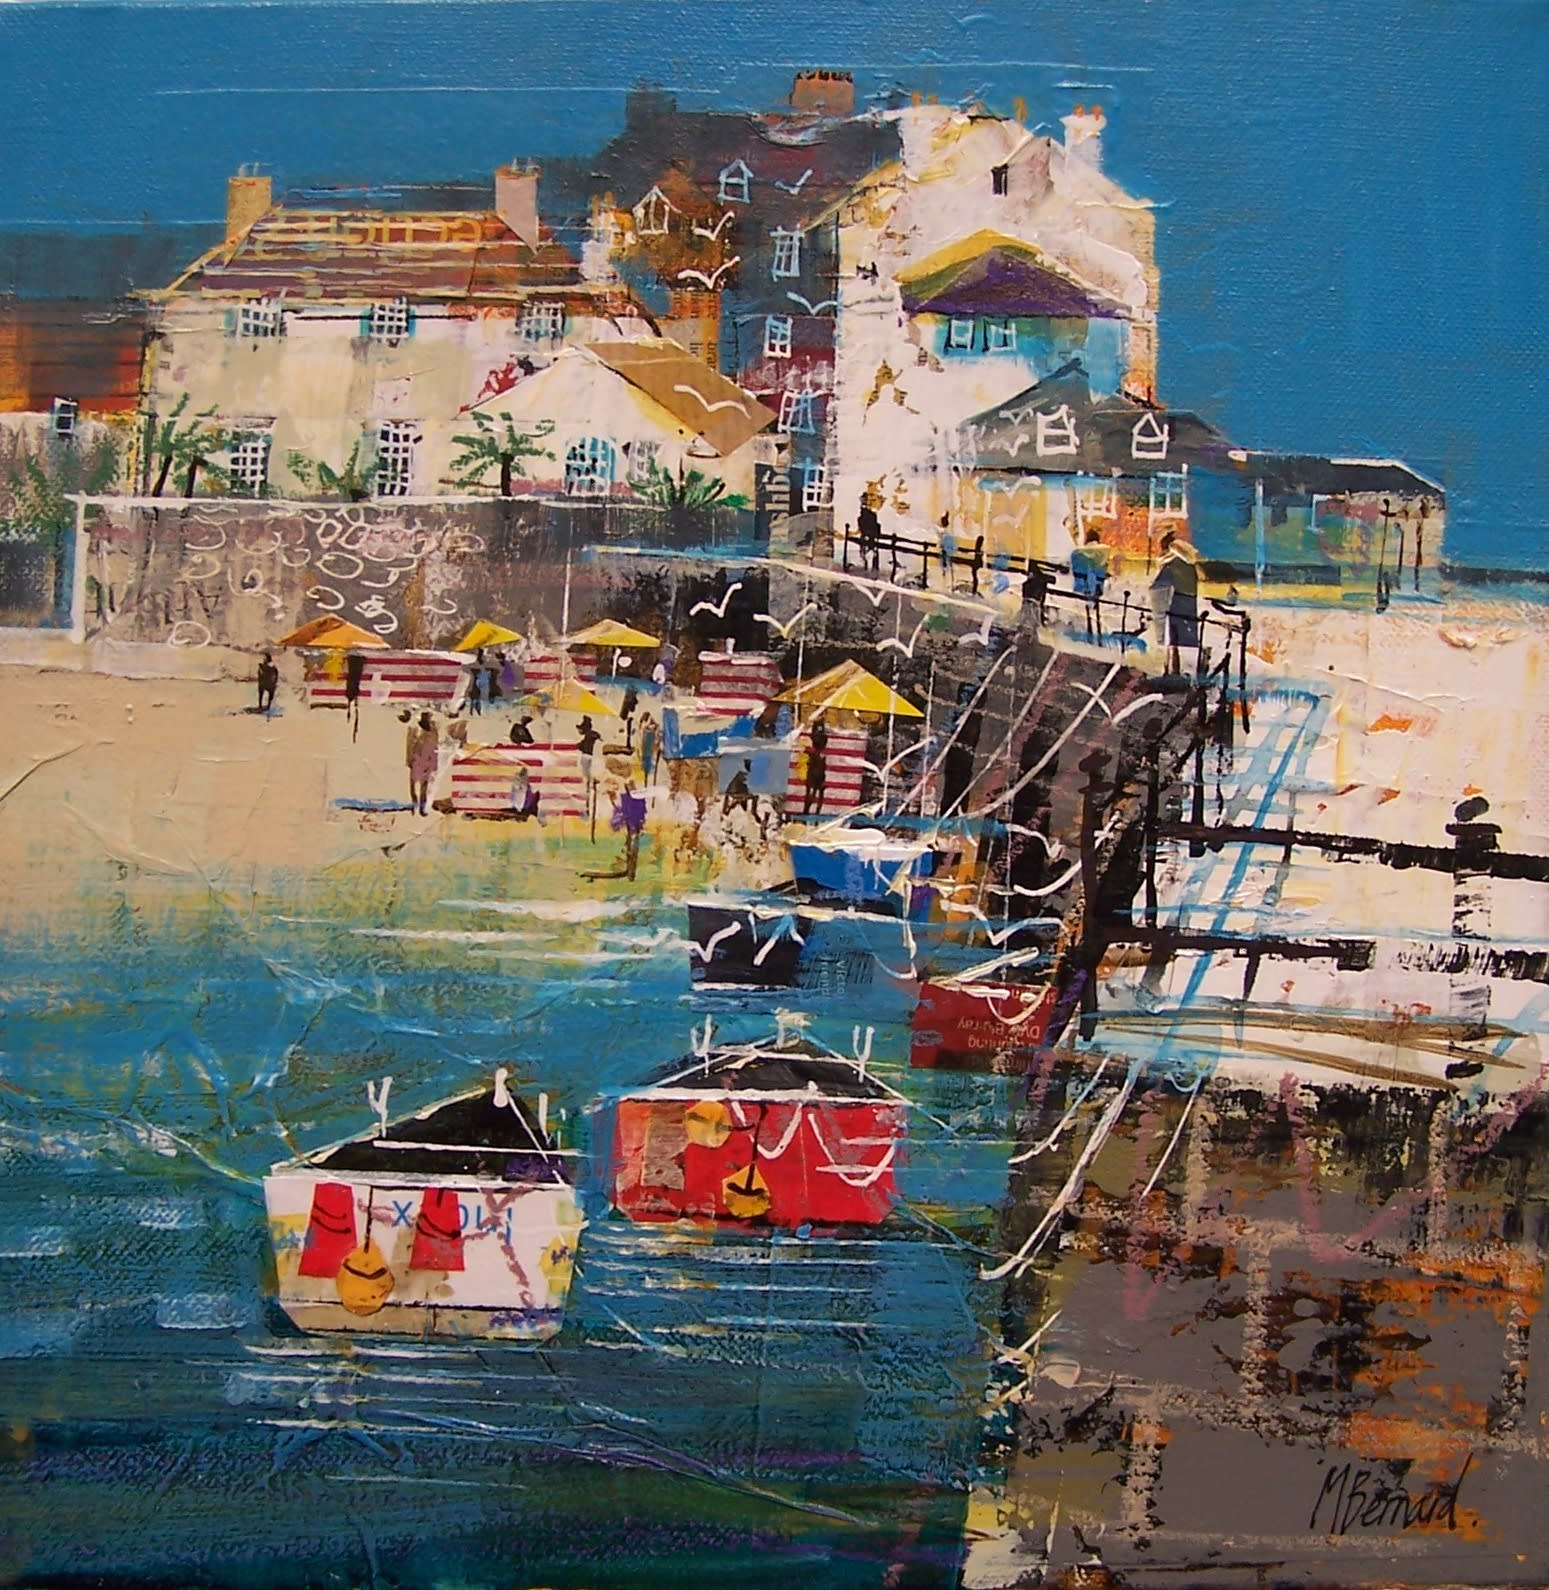 "<span class=""link fancybox-details-link""><a href=""/artists/155-mike-bernard-ri/works/5789-mike-bernard-ri-harbour-wall-st-ives-2018/"">View Detail Page</a></span><div class=""artist""><strong>Mike Bernard RI</strong></div> b. 1957 <div class=""title""><em>Harbour Wall, St Ives</em>, 2018</div> <div class=""signed_and_dated"">signed by the artist</div> <div class=""medium"">Mixed media on canvas</div> <div class=""dimensions"">30.5 x 30.5 cm<br /> 12 x 12 inches</div><div class=""copyright_line"">OwnArt: £ 95 x 10 Months, 0% APR</div>"